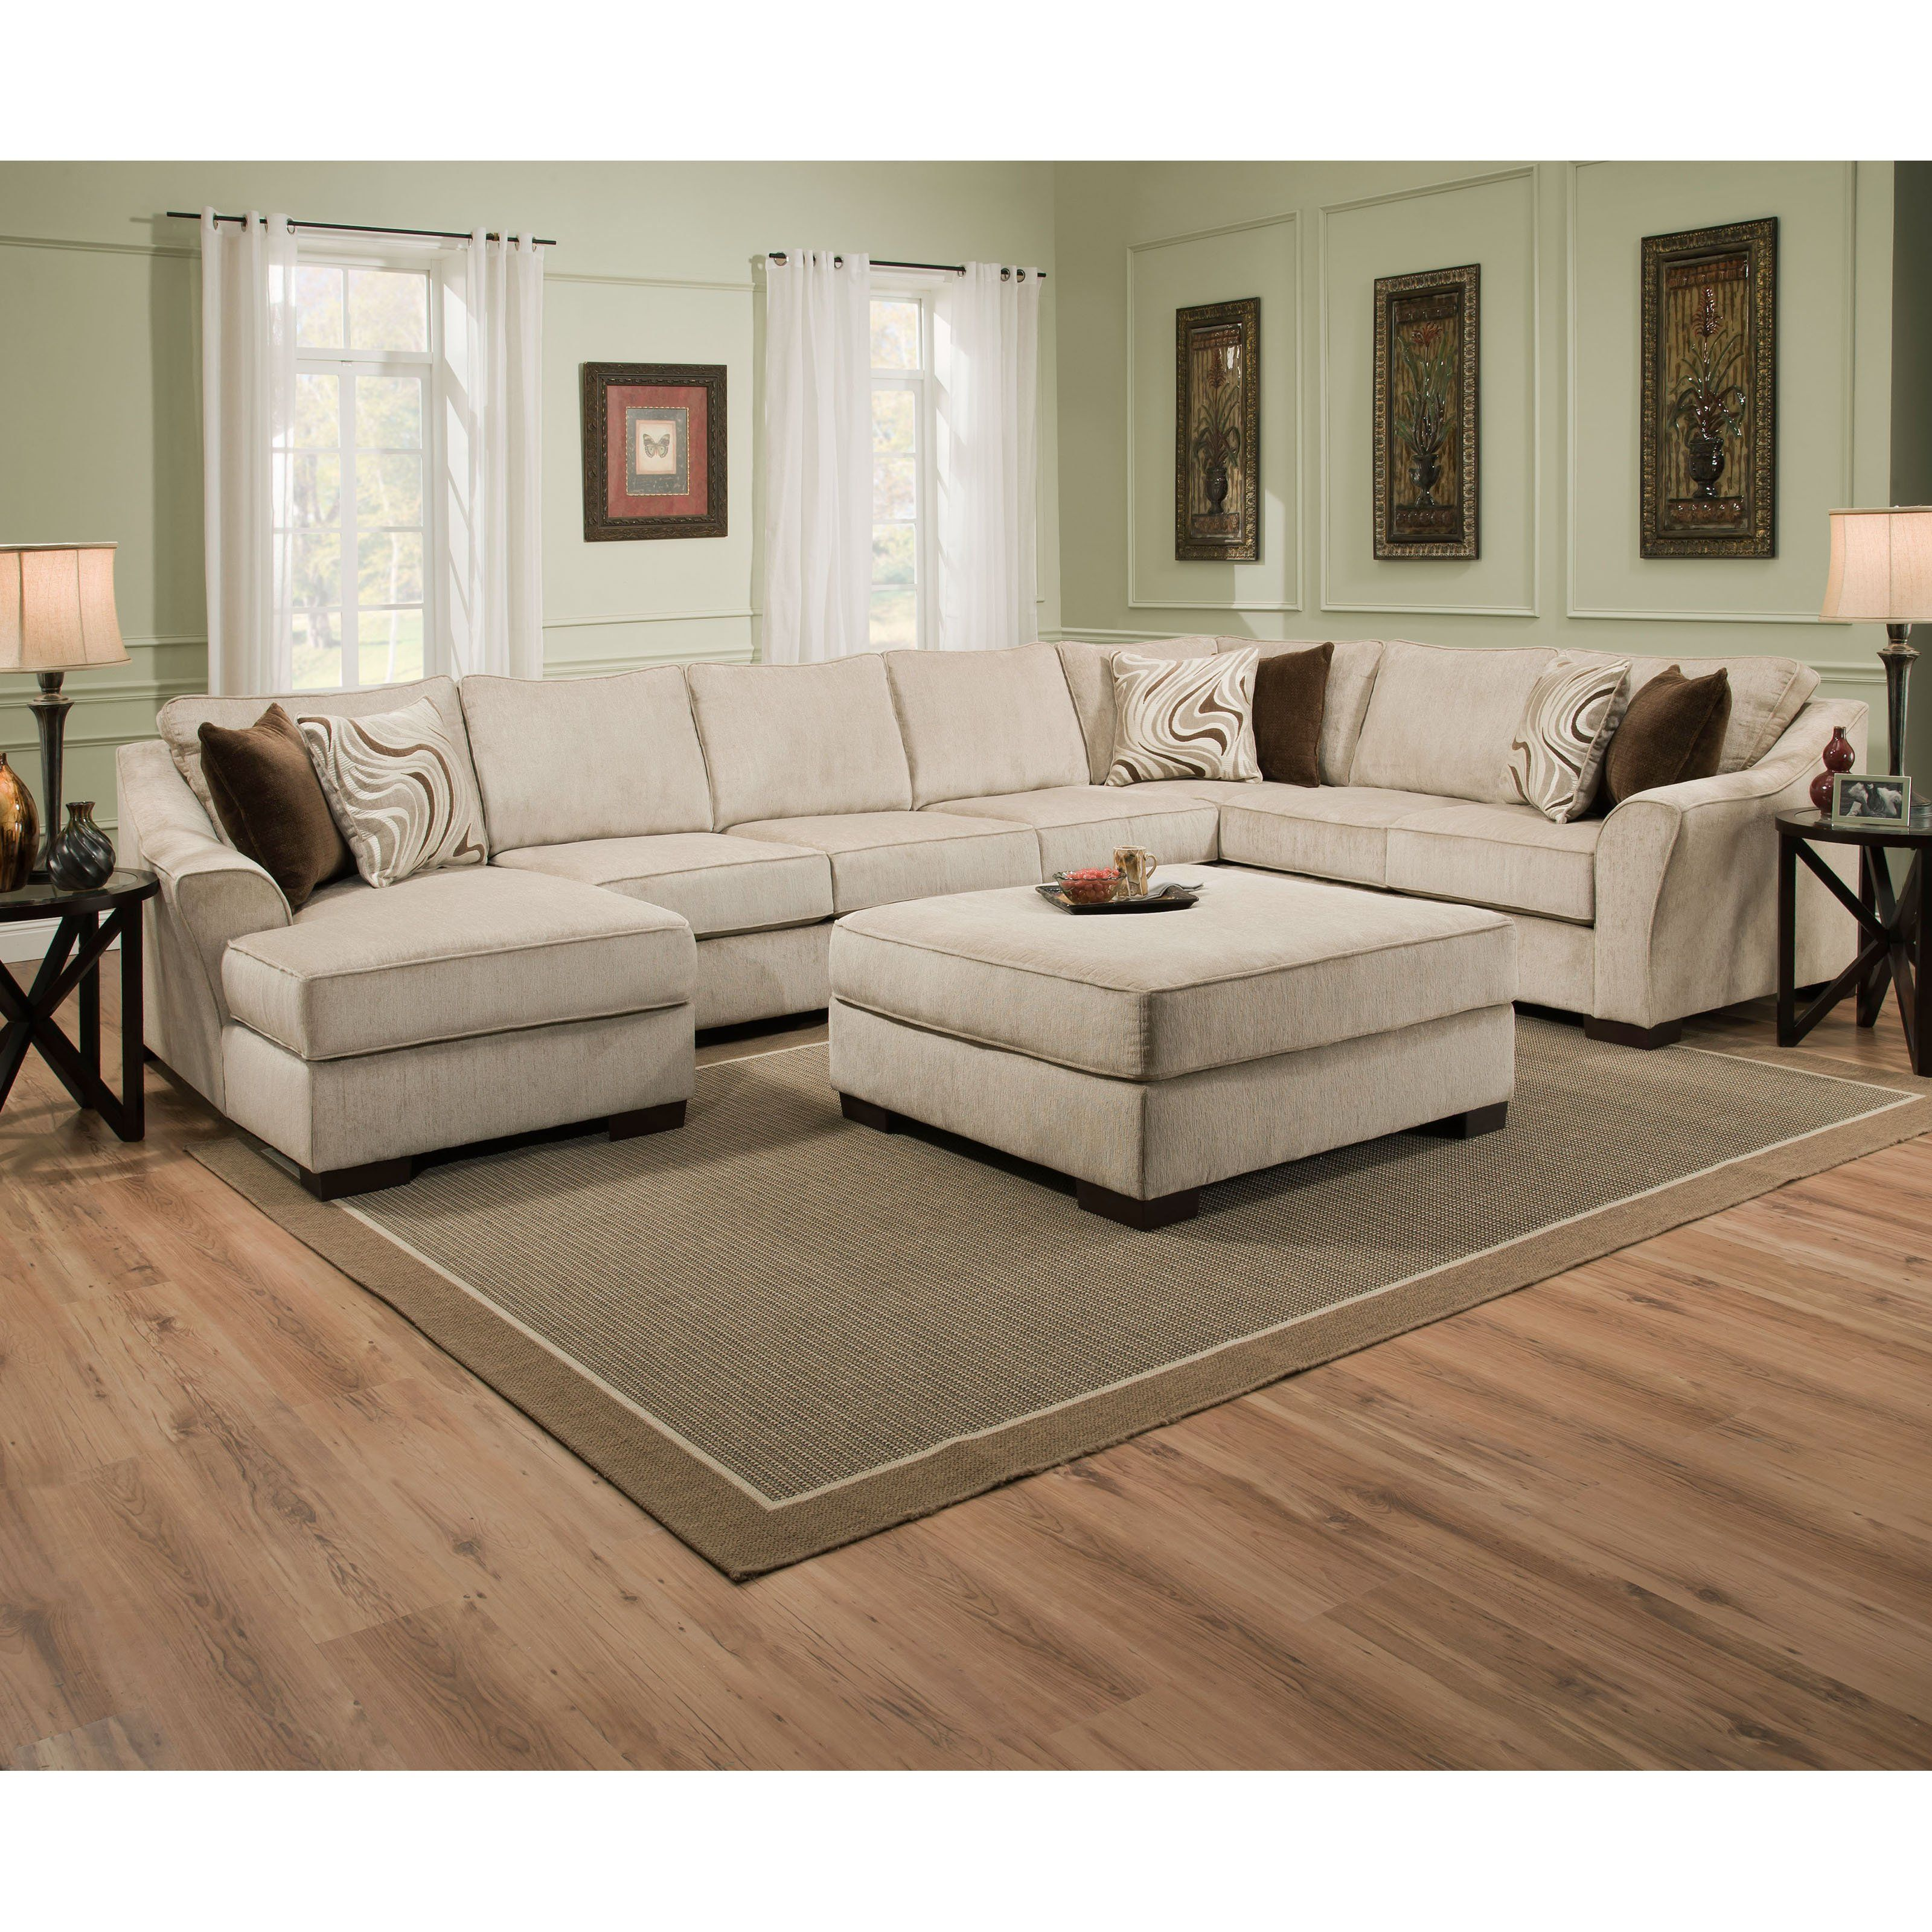 Simmons Kingley Right Facing Sofa Sectional With Chaise Udf382